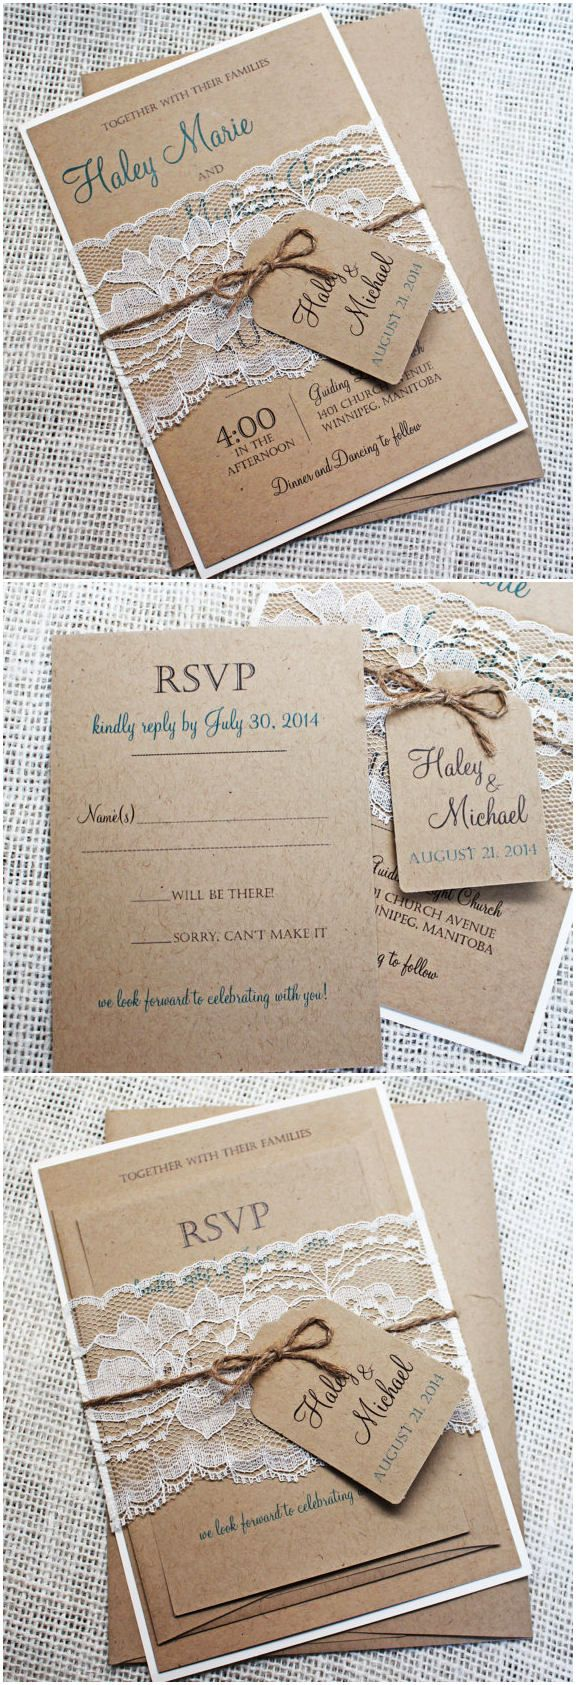 21 Best Anna S Weddind Ideas Images On Pinterest Rustic Wedding